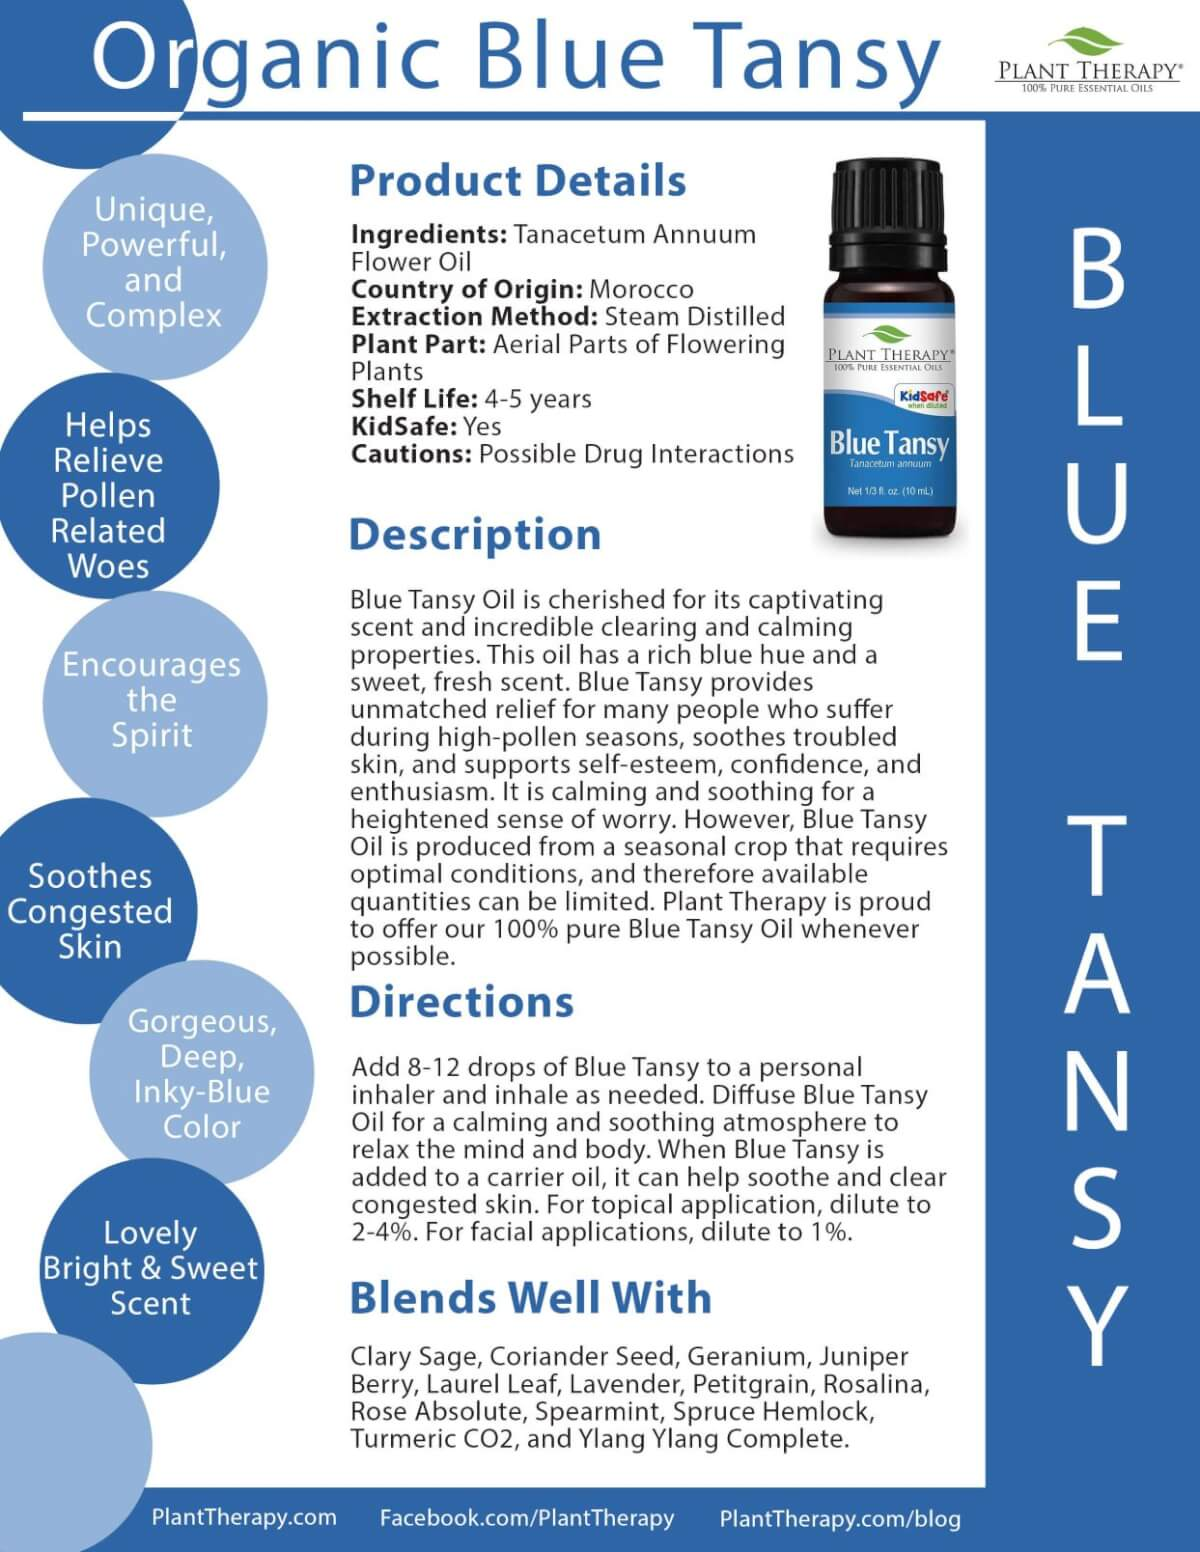 Organic Blue Tansy essential oil plant therapy